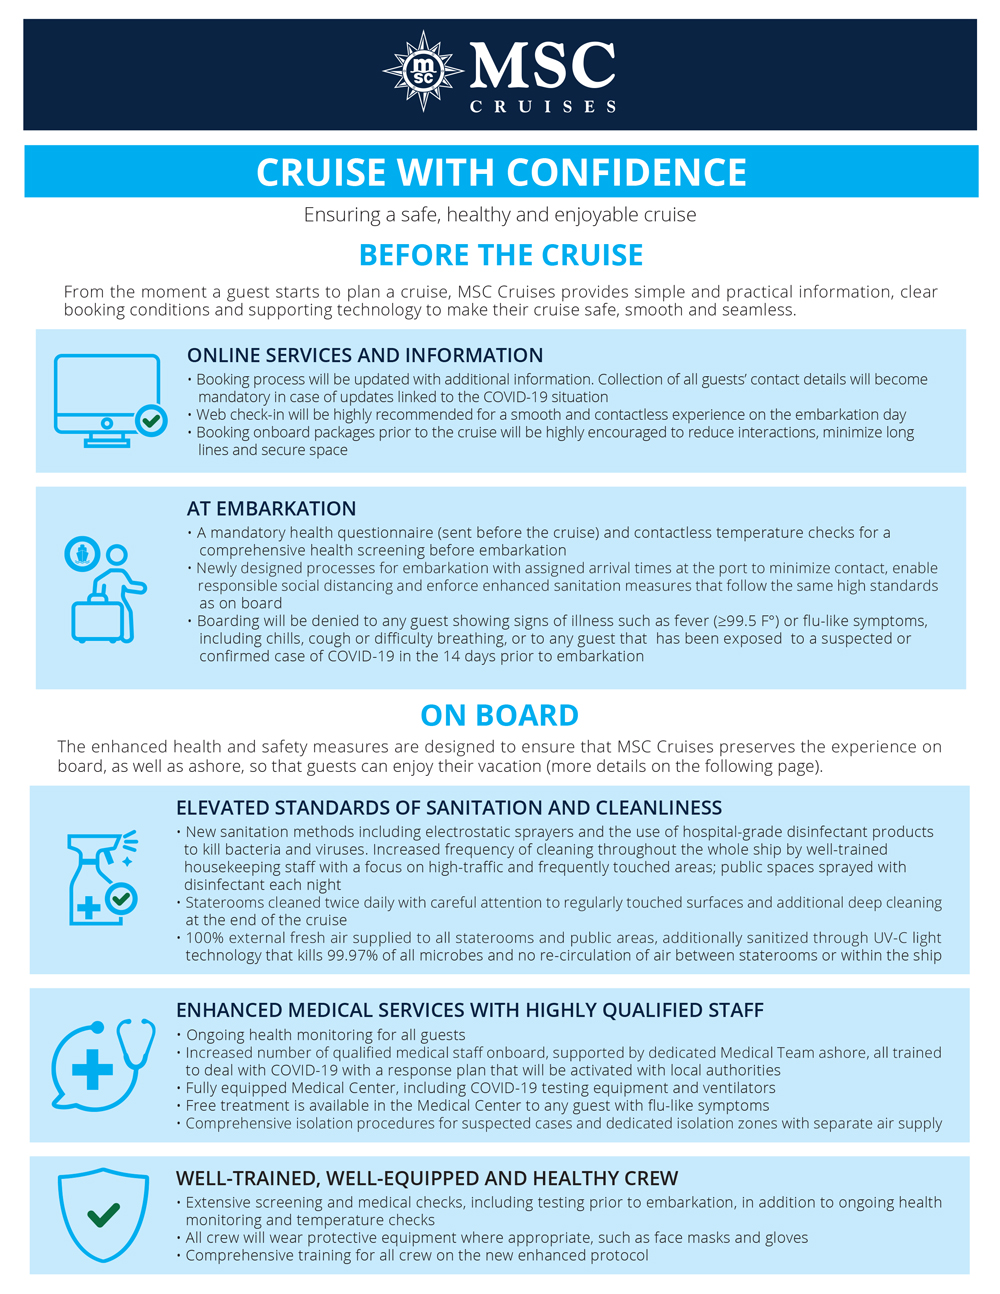 MSC Cruises - Cruise with Confidence Flyer